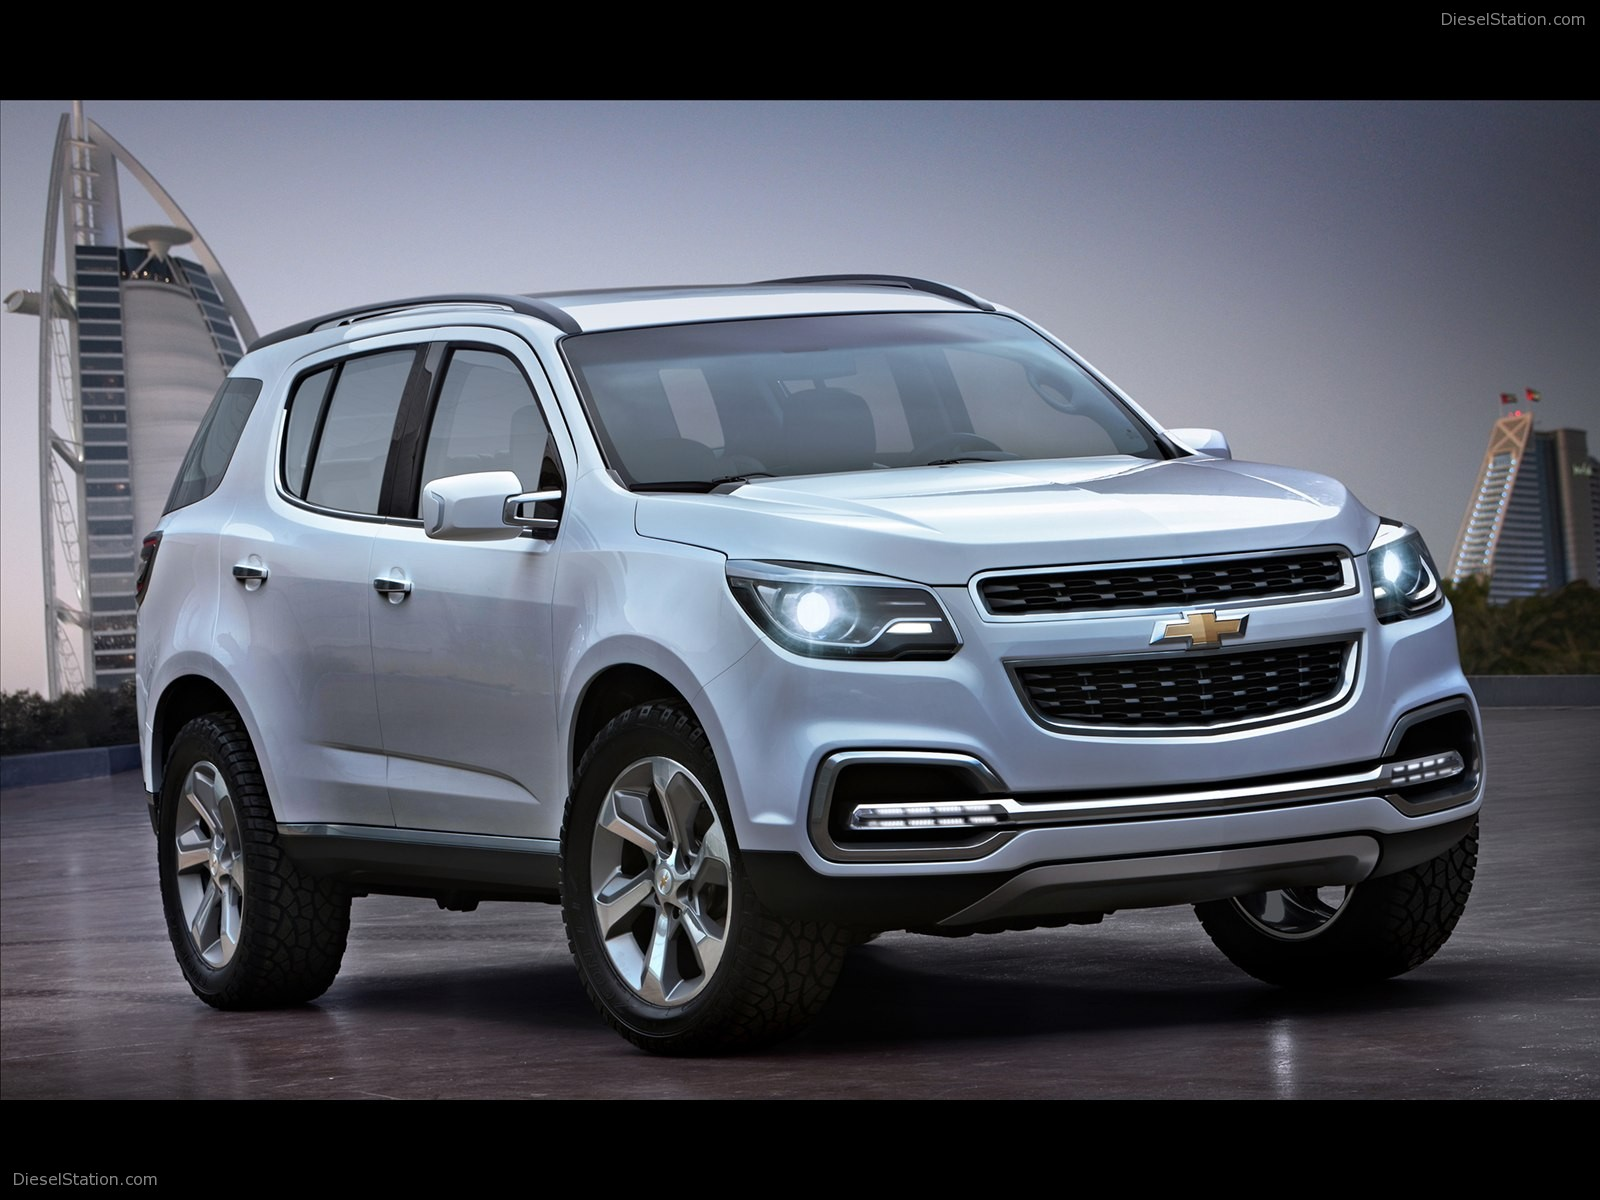 Chevrolet Suv 2015 >> Chevrolet Suv 2015 Review Amazing Pictures And Images